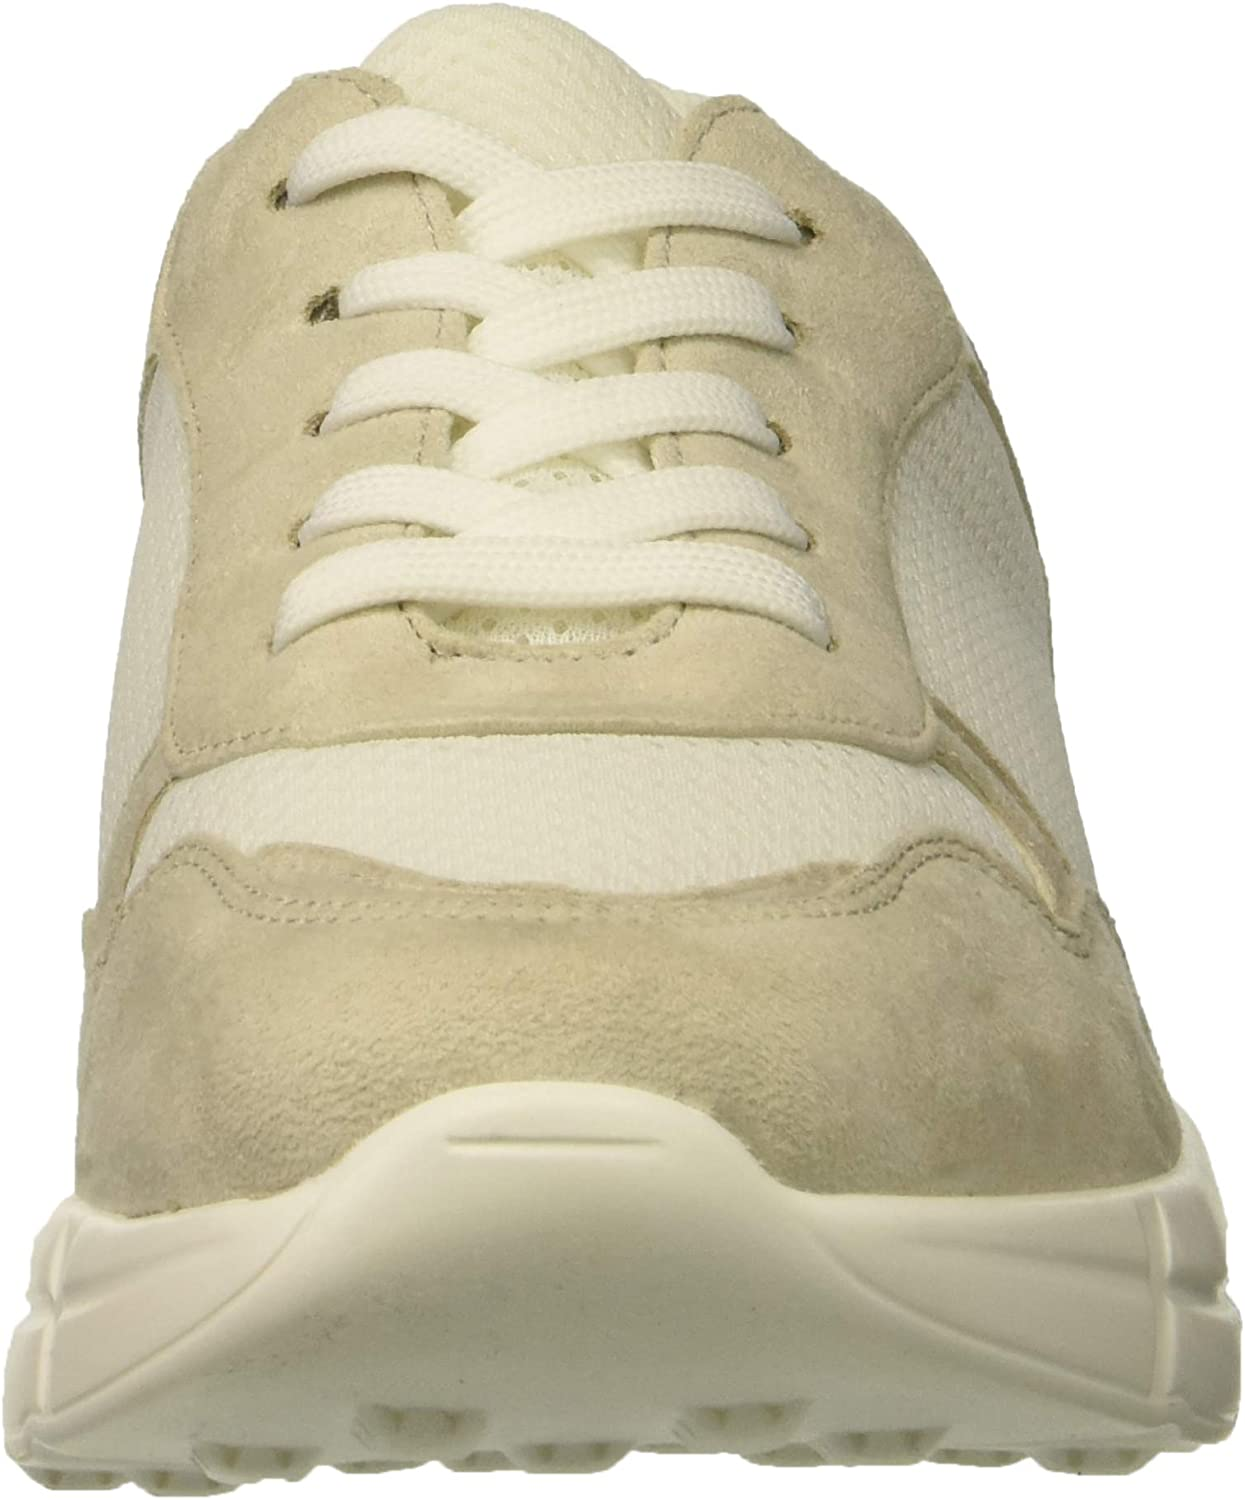 Madden Girl Womens Burrel Low Top Lace Up Fashion Sneakers White Fabric